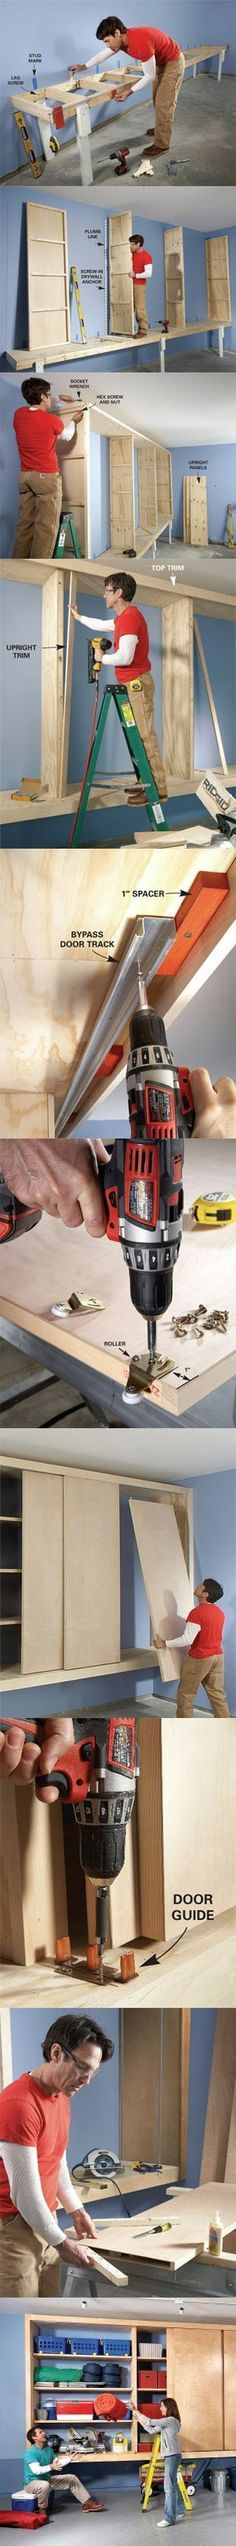 Giant DIY Garage Cabinet Plans: Build your own shelving and storage area for the garage. http://www.familyhandyman.com/garage/storage/giant-diy-garage-cabinet/view-all